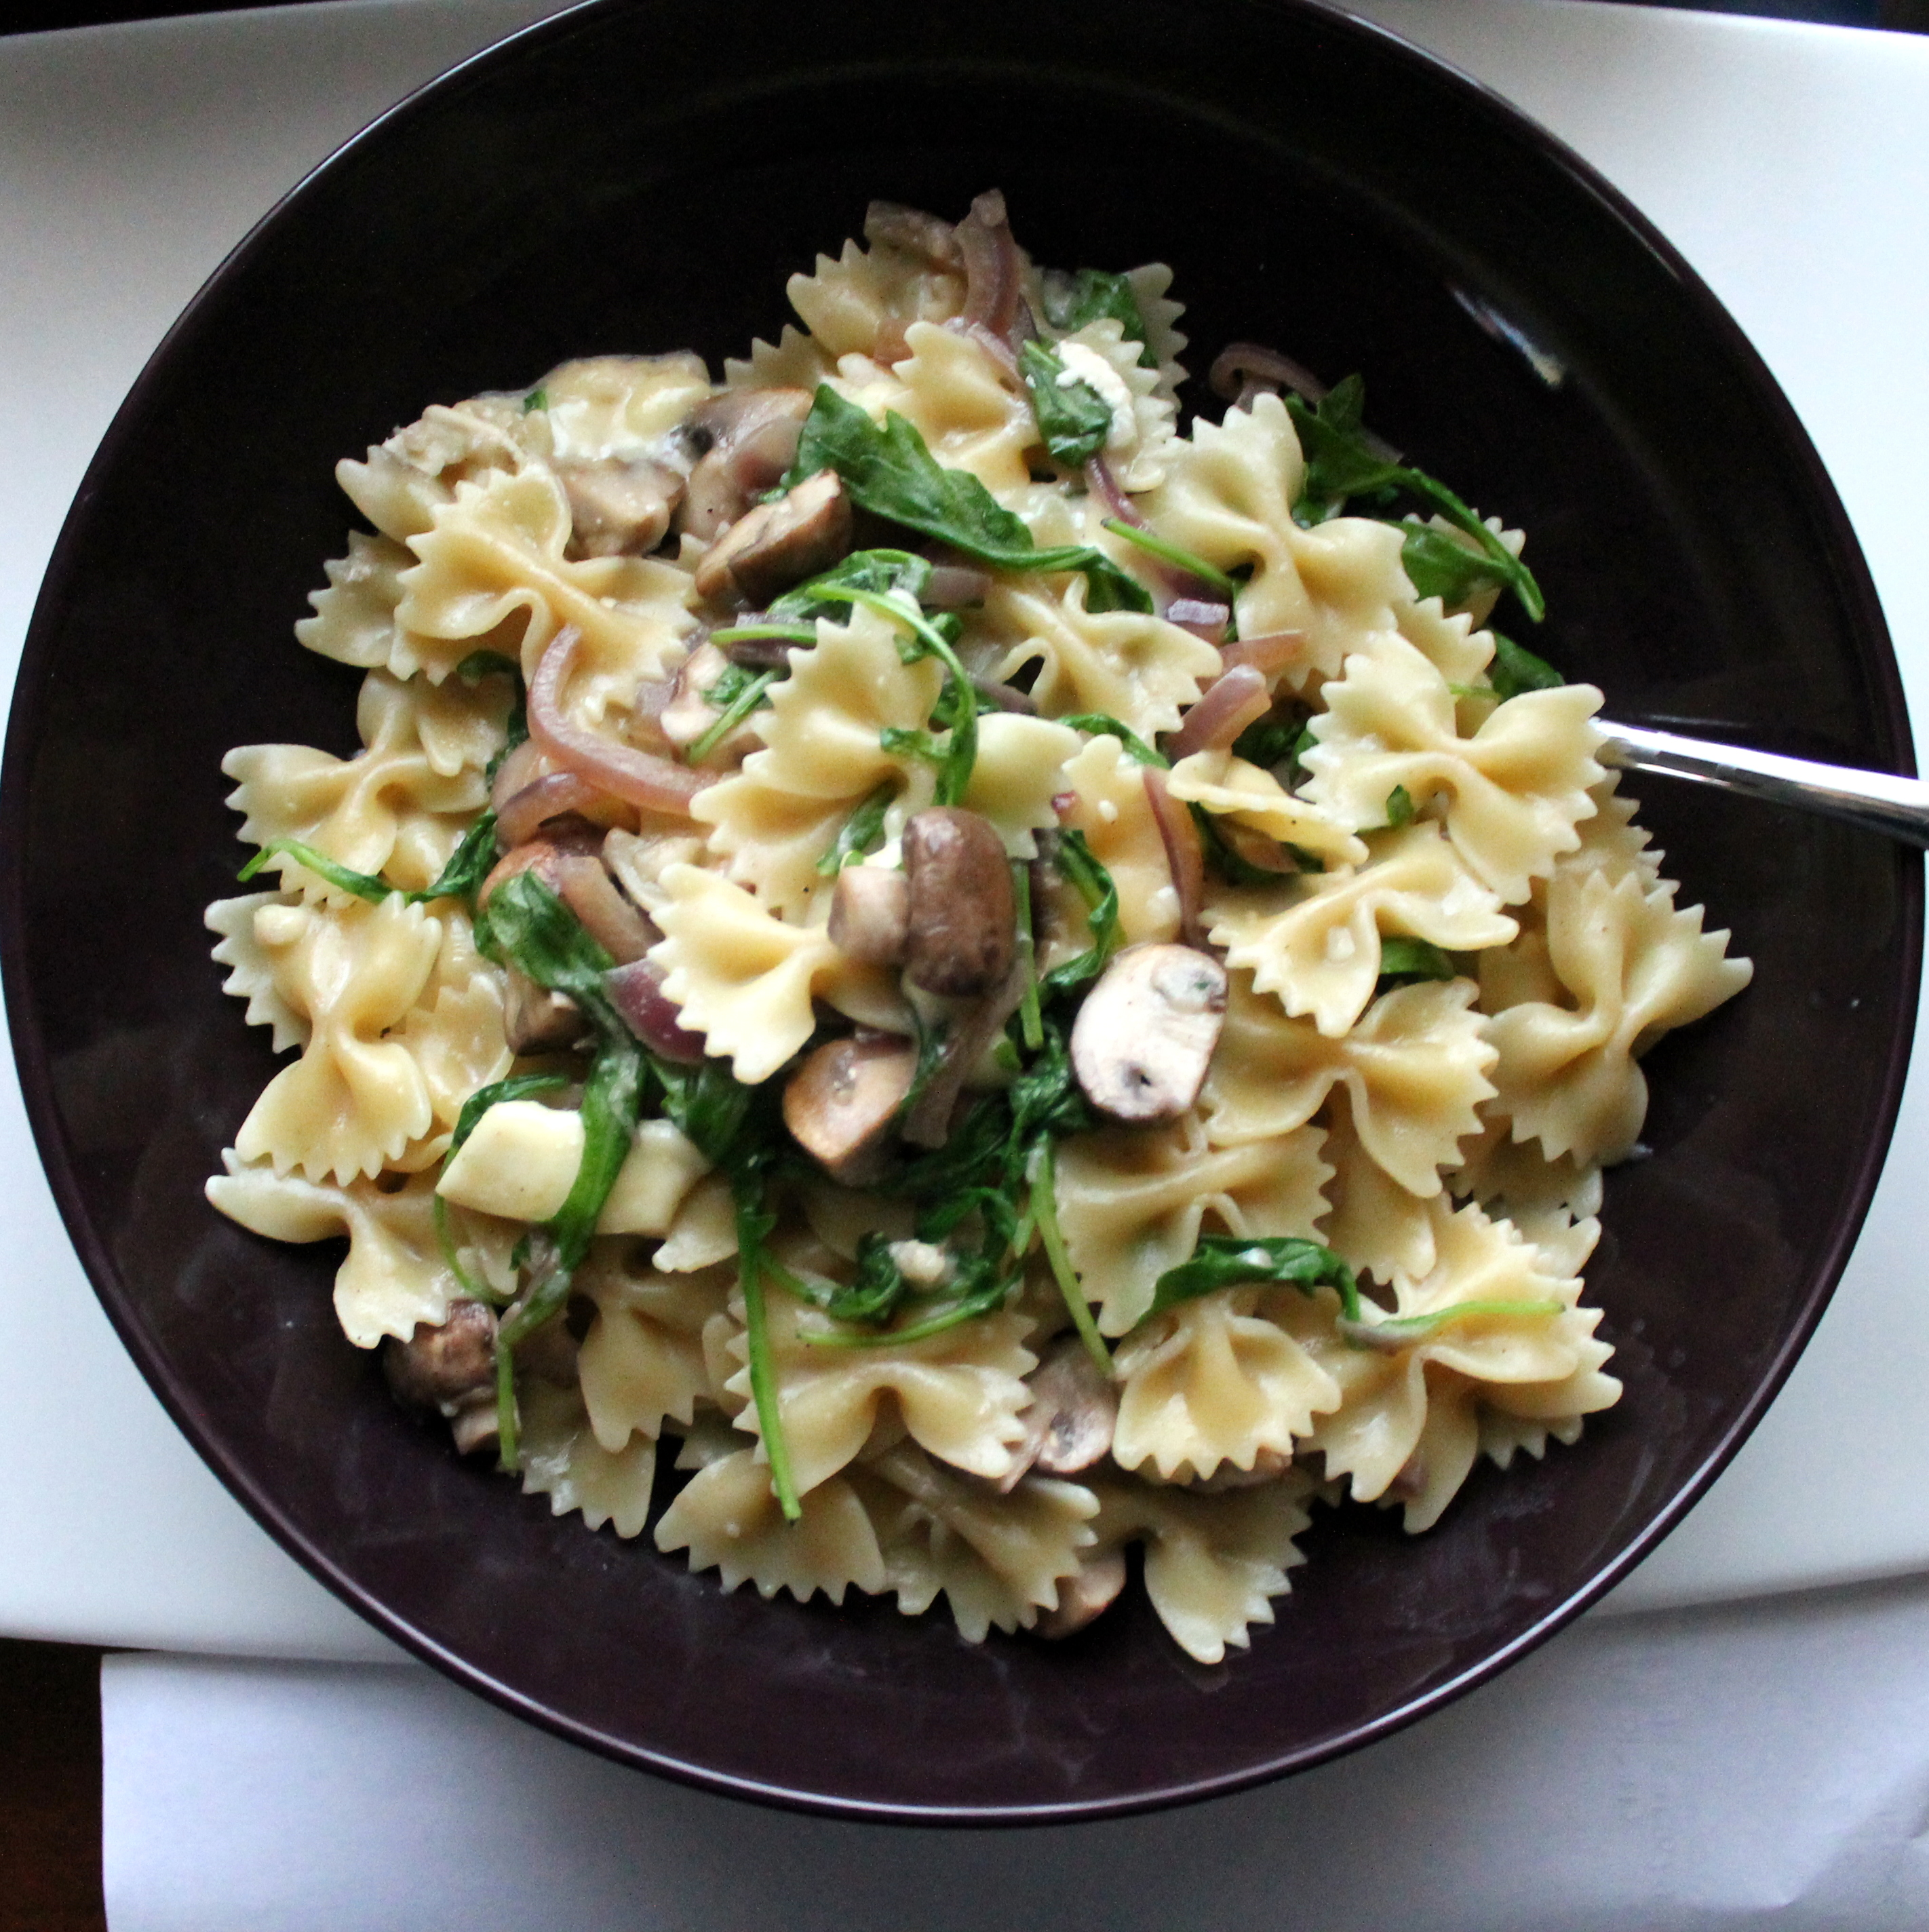 ... pasta is coated. Stir in the mushroom mixture and arugula and serve